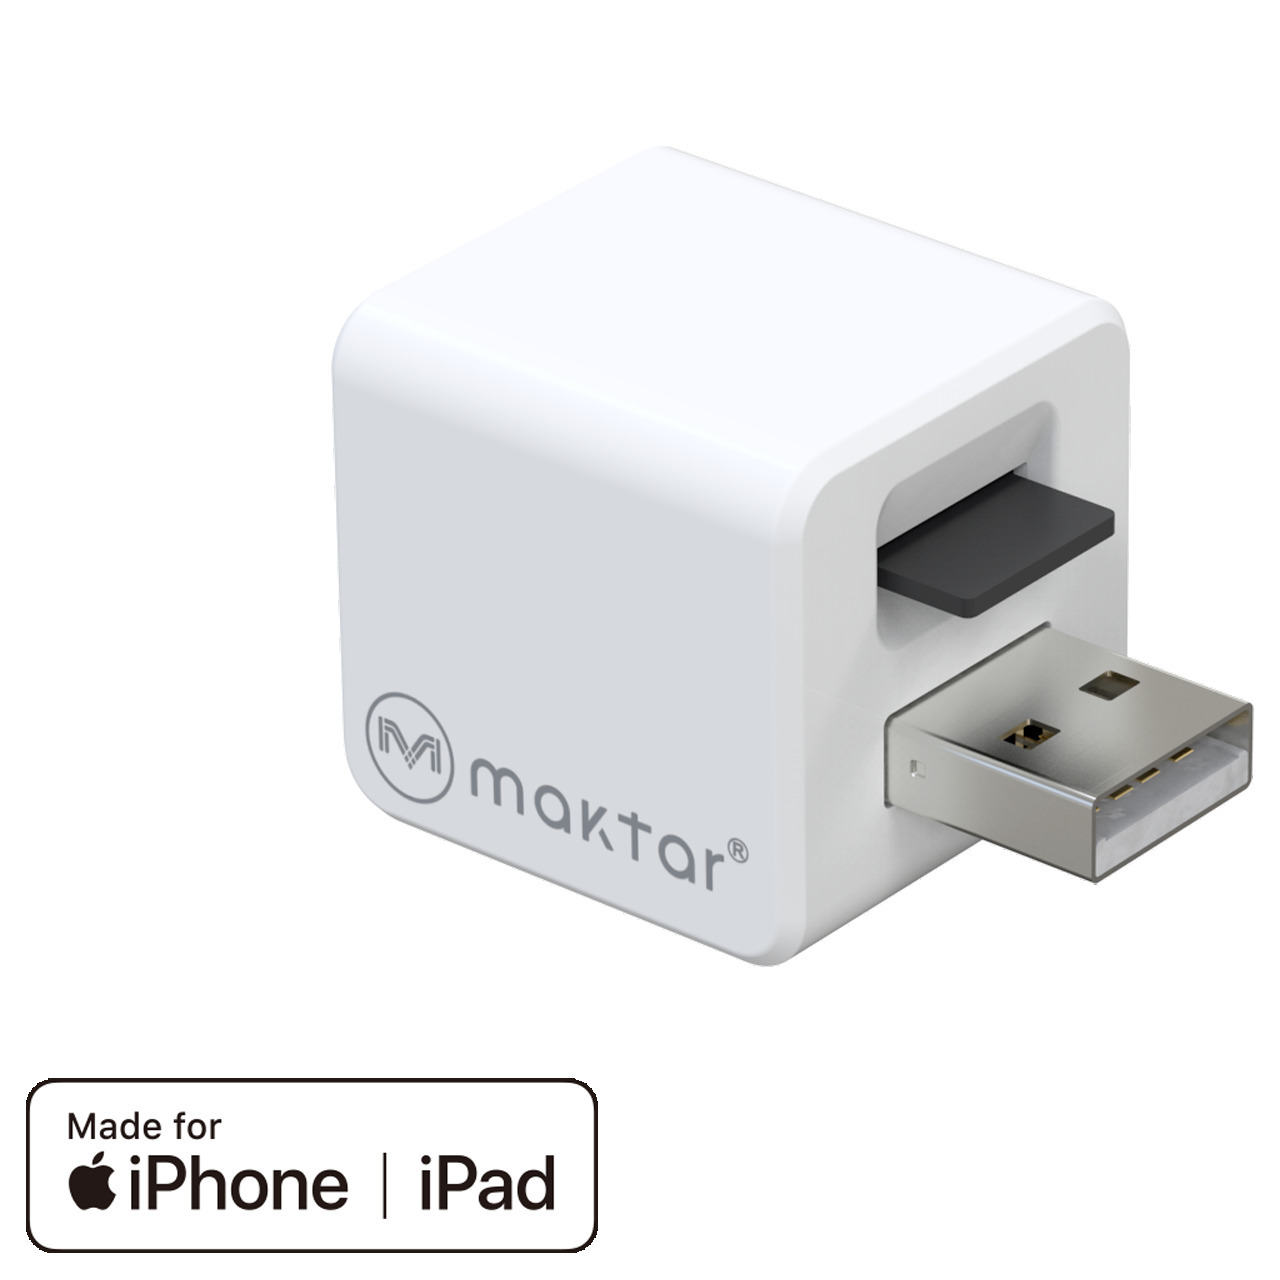 Maktar Auto-Back-up-Adapter Qubii- fund-252 r iPhone-iPad- speichert Bilder-Videos-Kontakte auf microSD